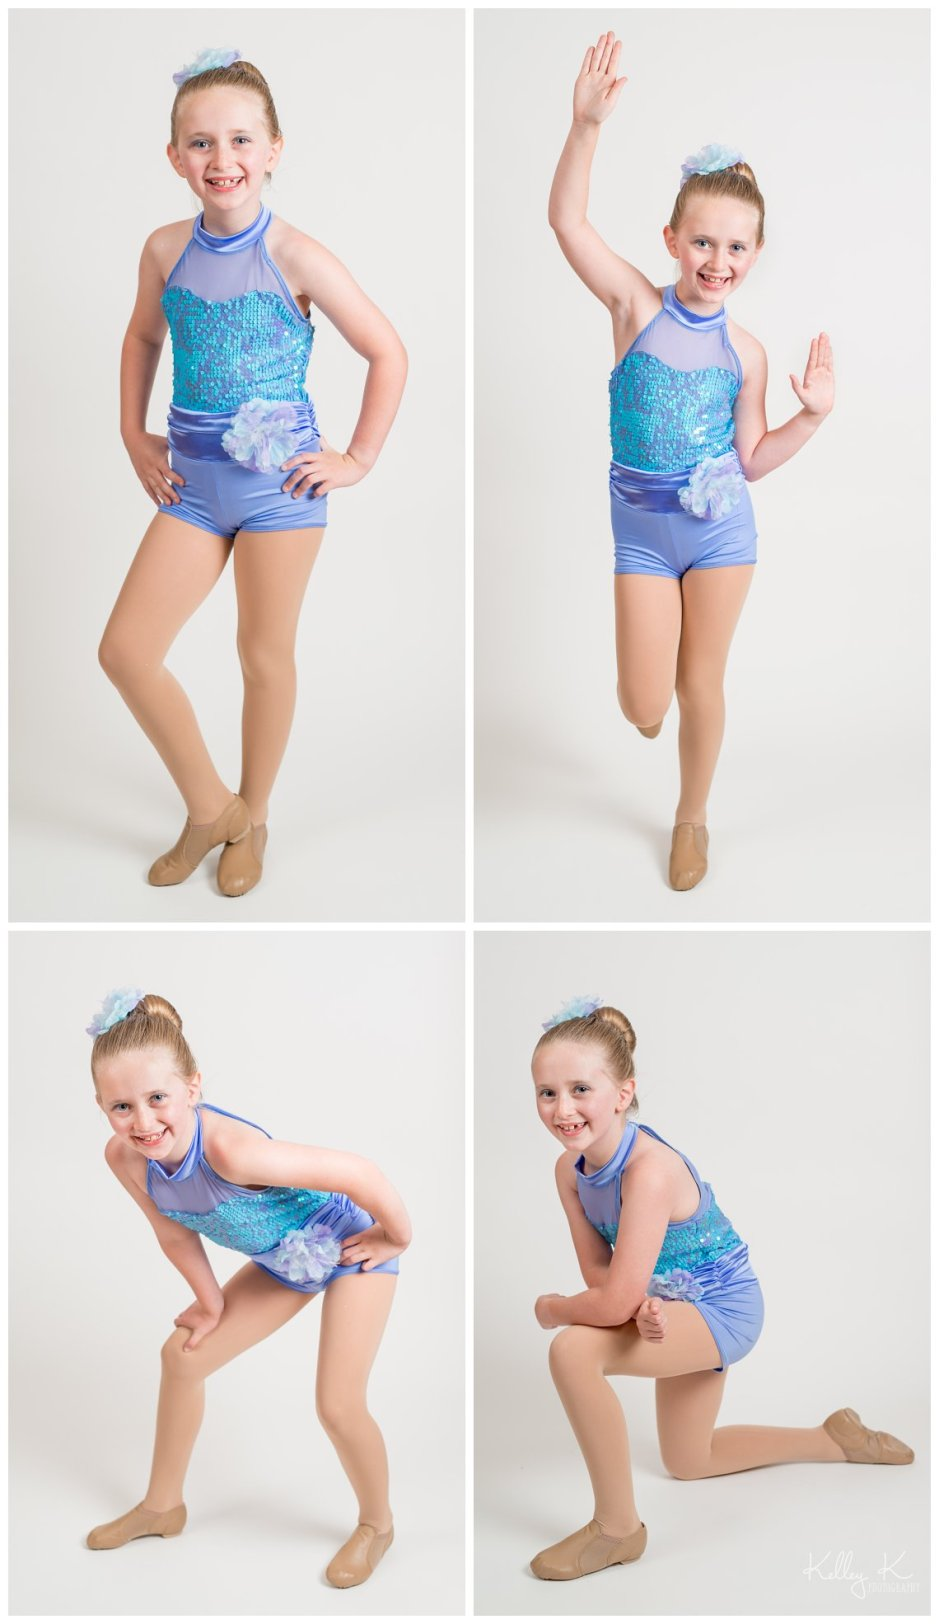 Children's Jazz Dance Portraits | Kelley K Photography Smyrna, GA